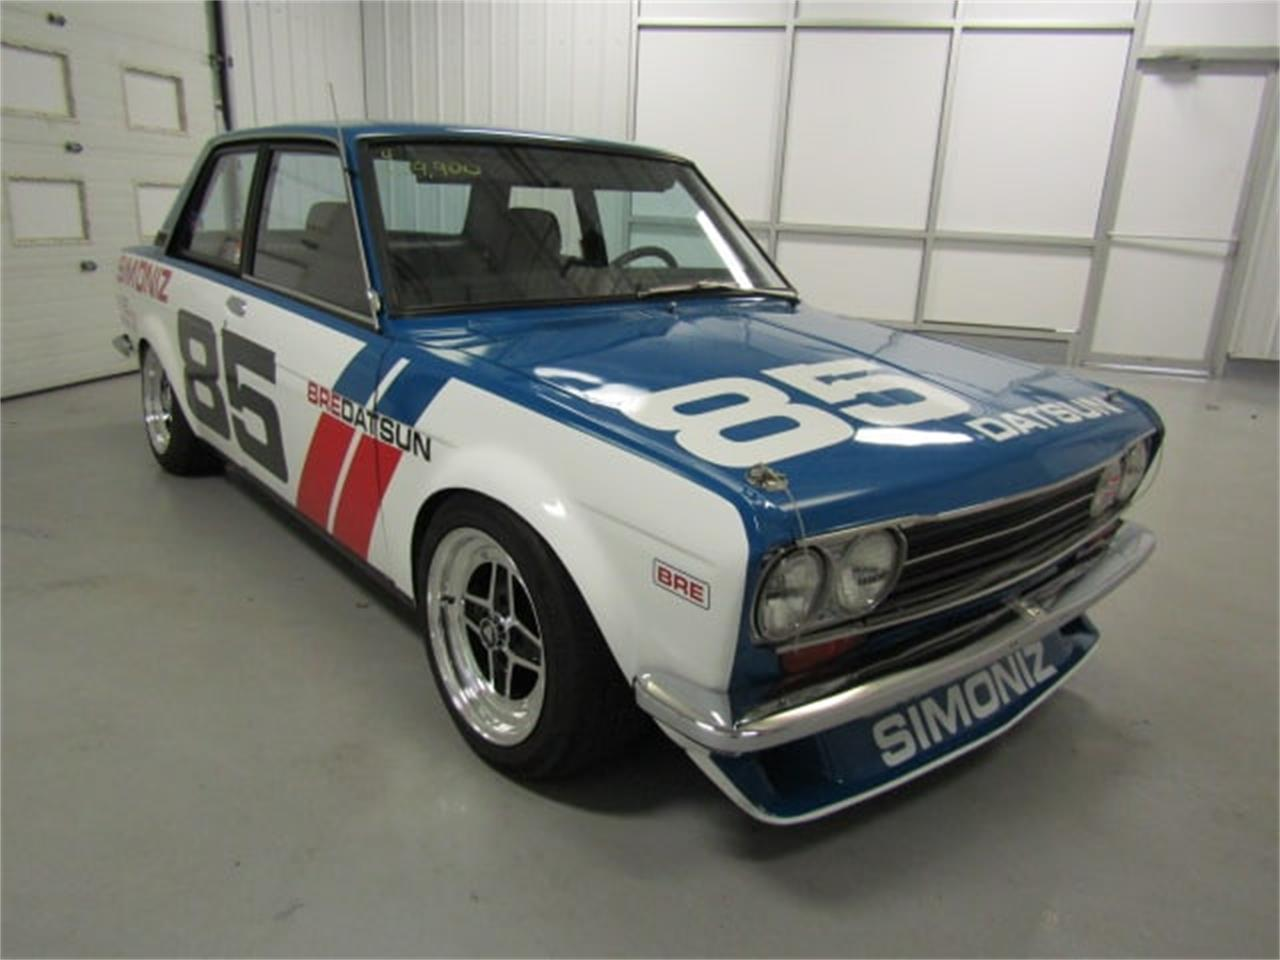 For Sale: 1971 Datsun 510 in Christiansburg, Virginia